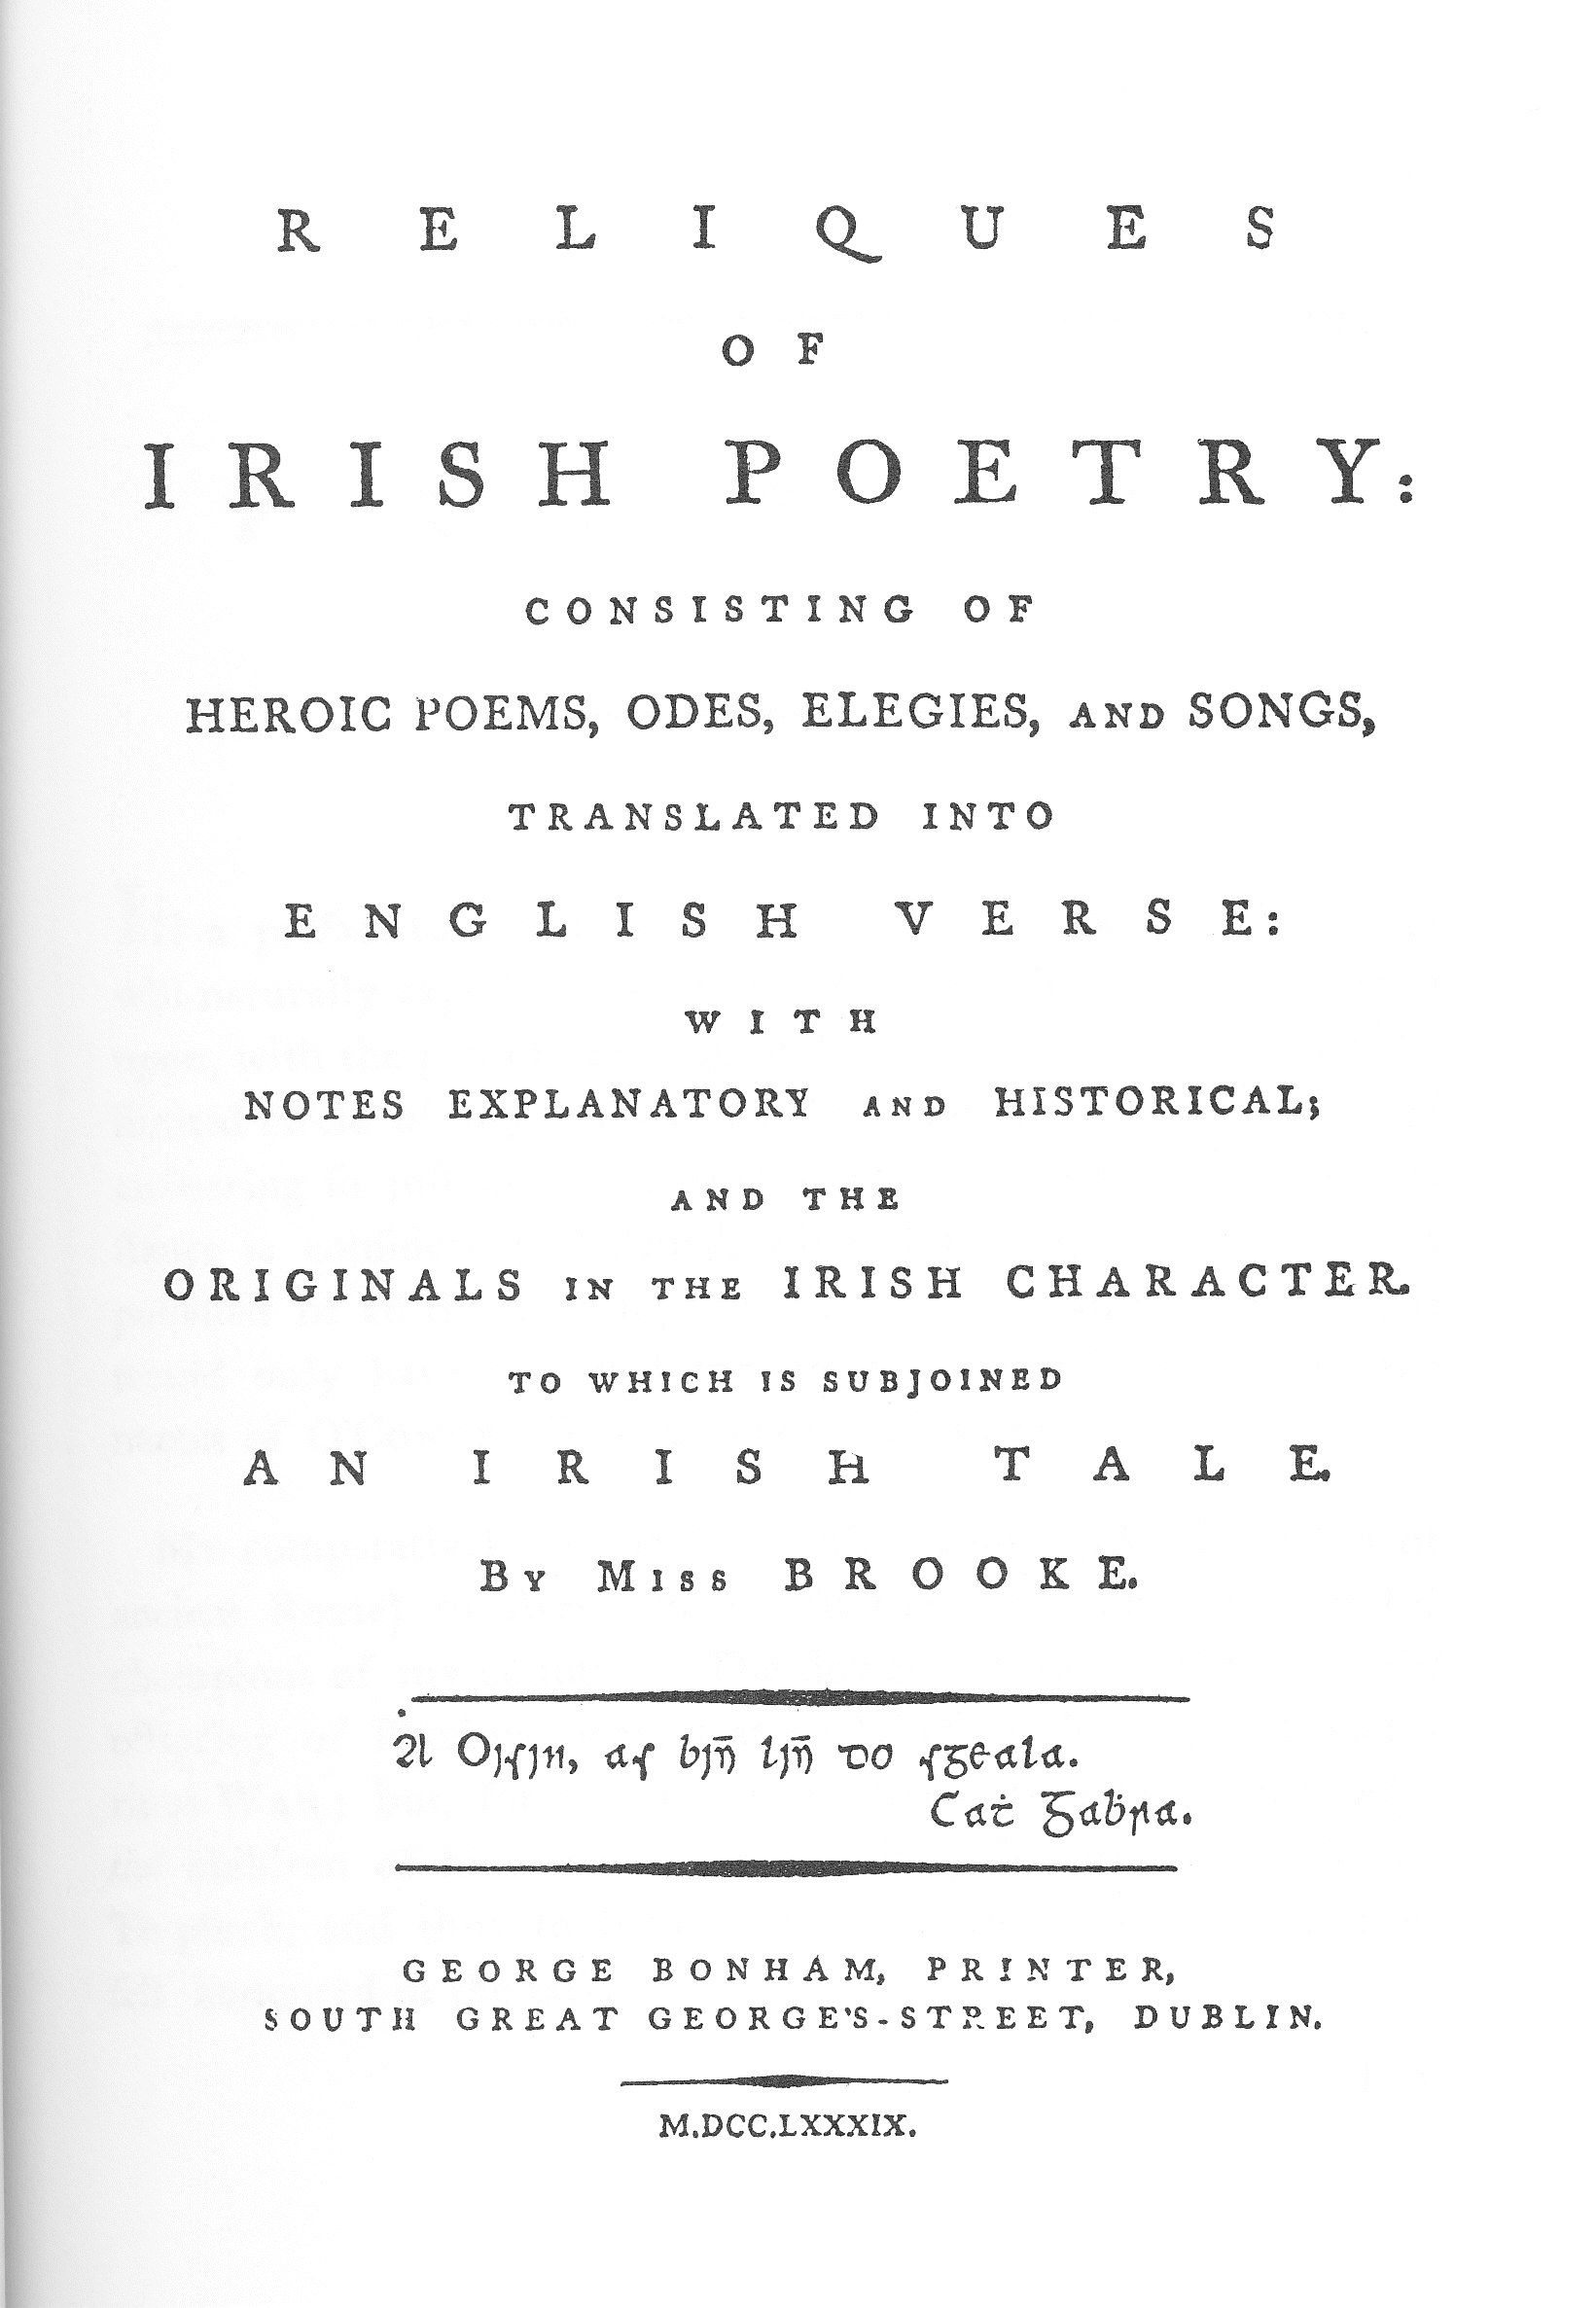 Charlotte Brooke The Woman Who Saved Irish Poetry